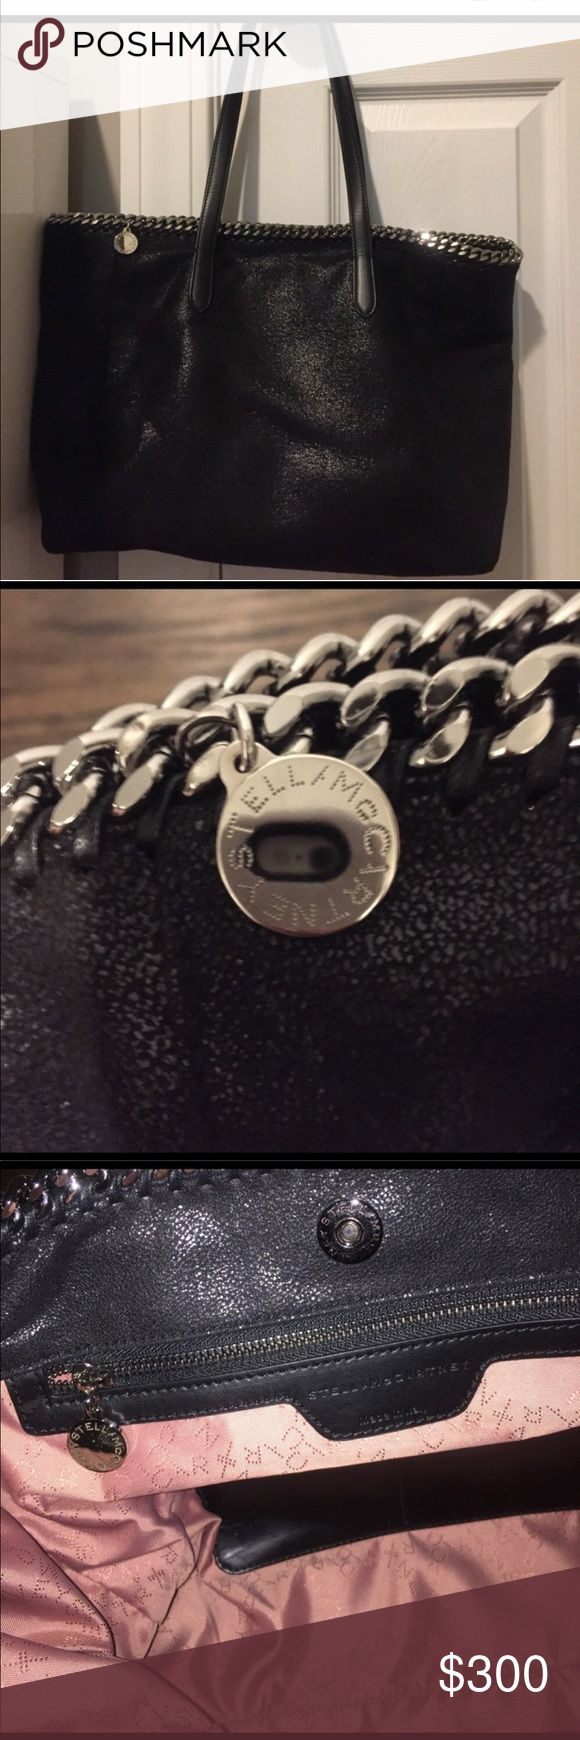 Authentic Stella bag in black. Stella bag in black 100 percent authentic. In good condition Stella McCartney Bags